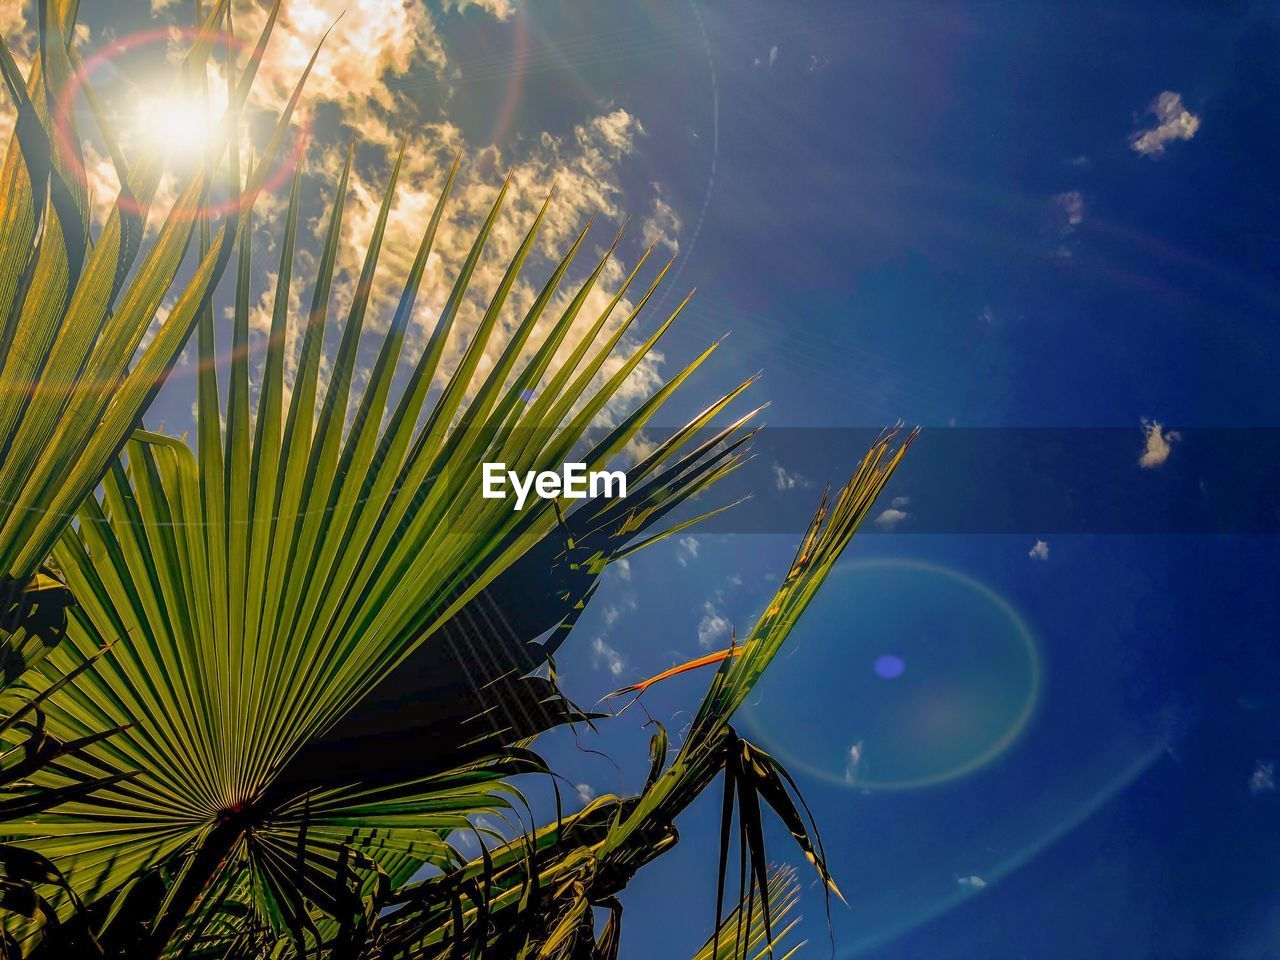 sky, plant, beauty in nature, nature, sunlight, growth, lens flare, no people, low angle view, palm tree, cloud - sky, sunbeam, tree, palm leaf, leaf, day, tropical climate, tranquility, sun, green color, bright